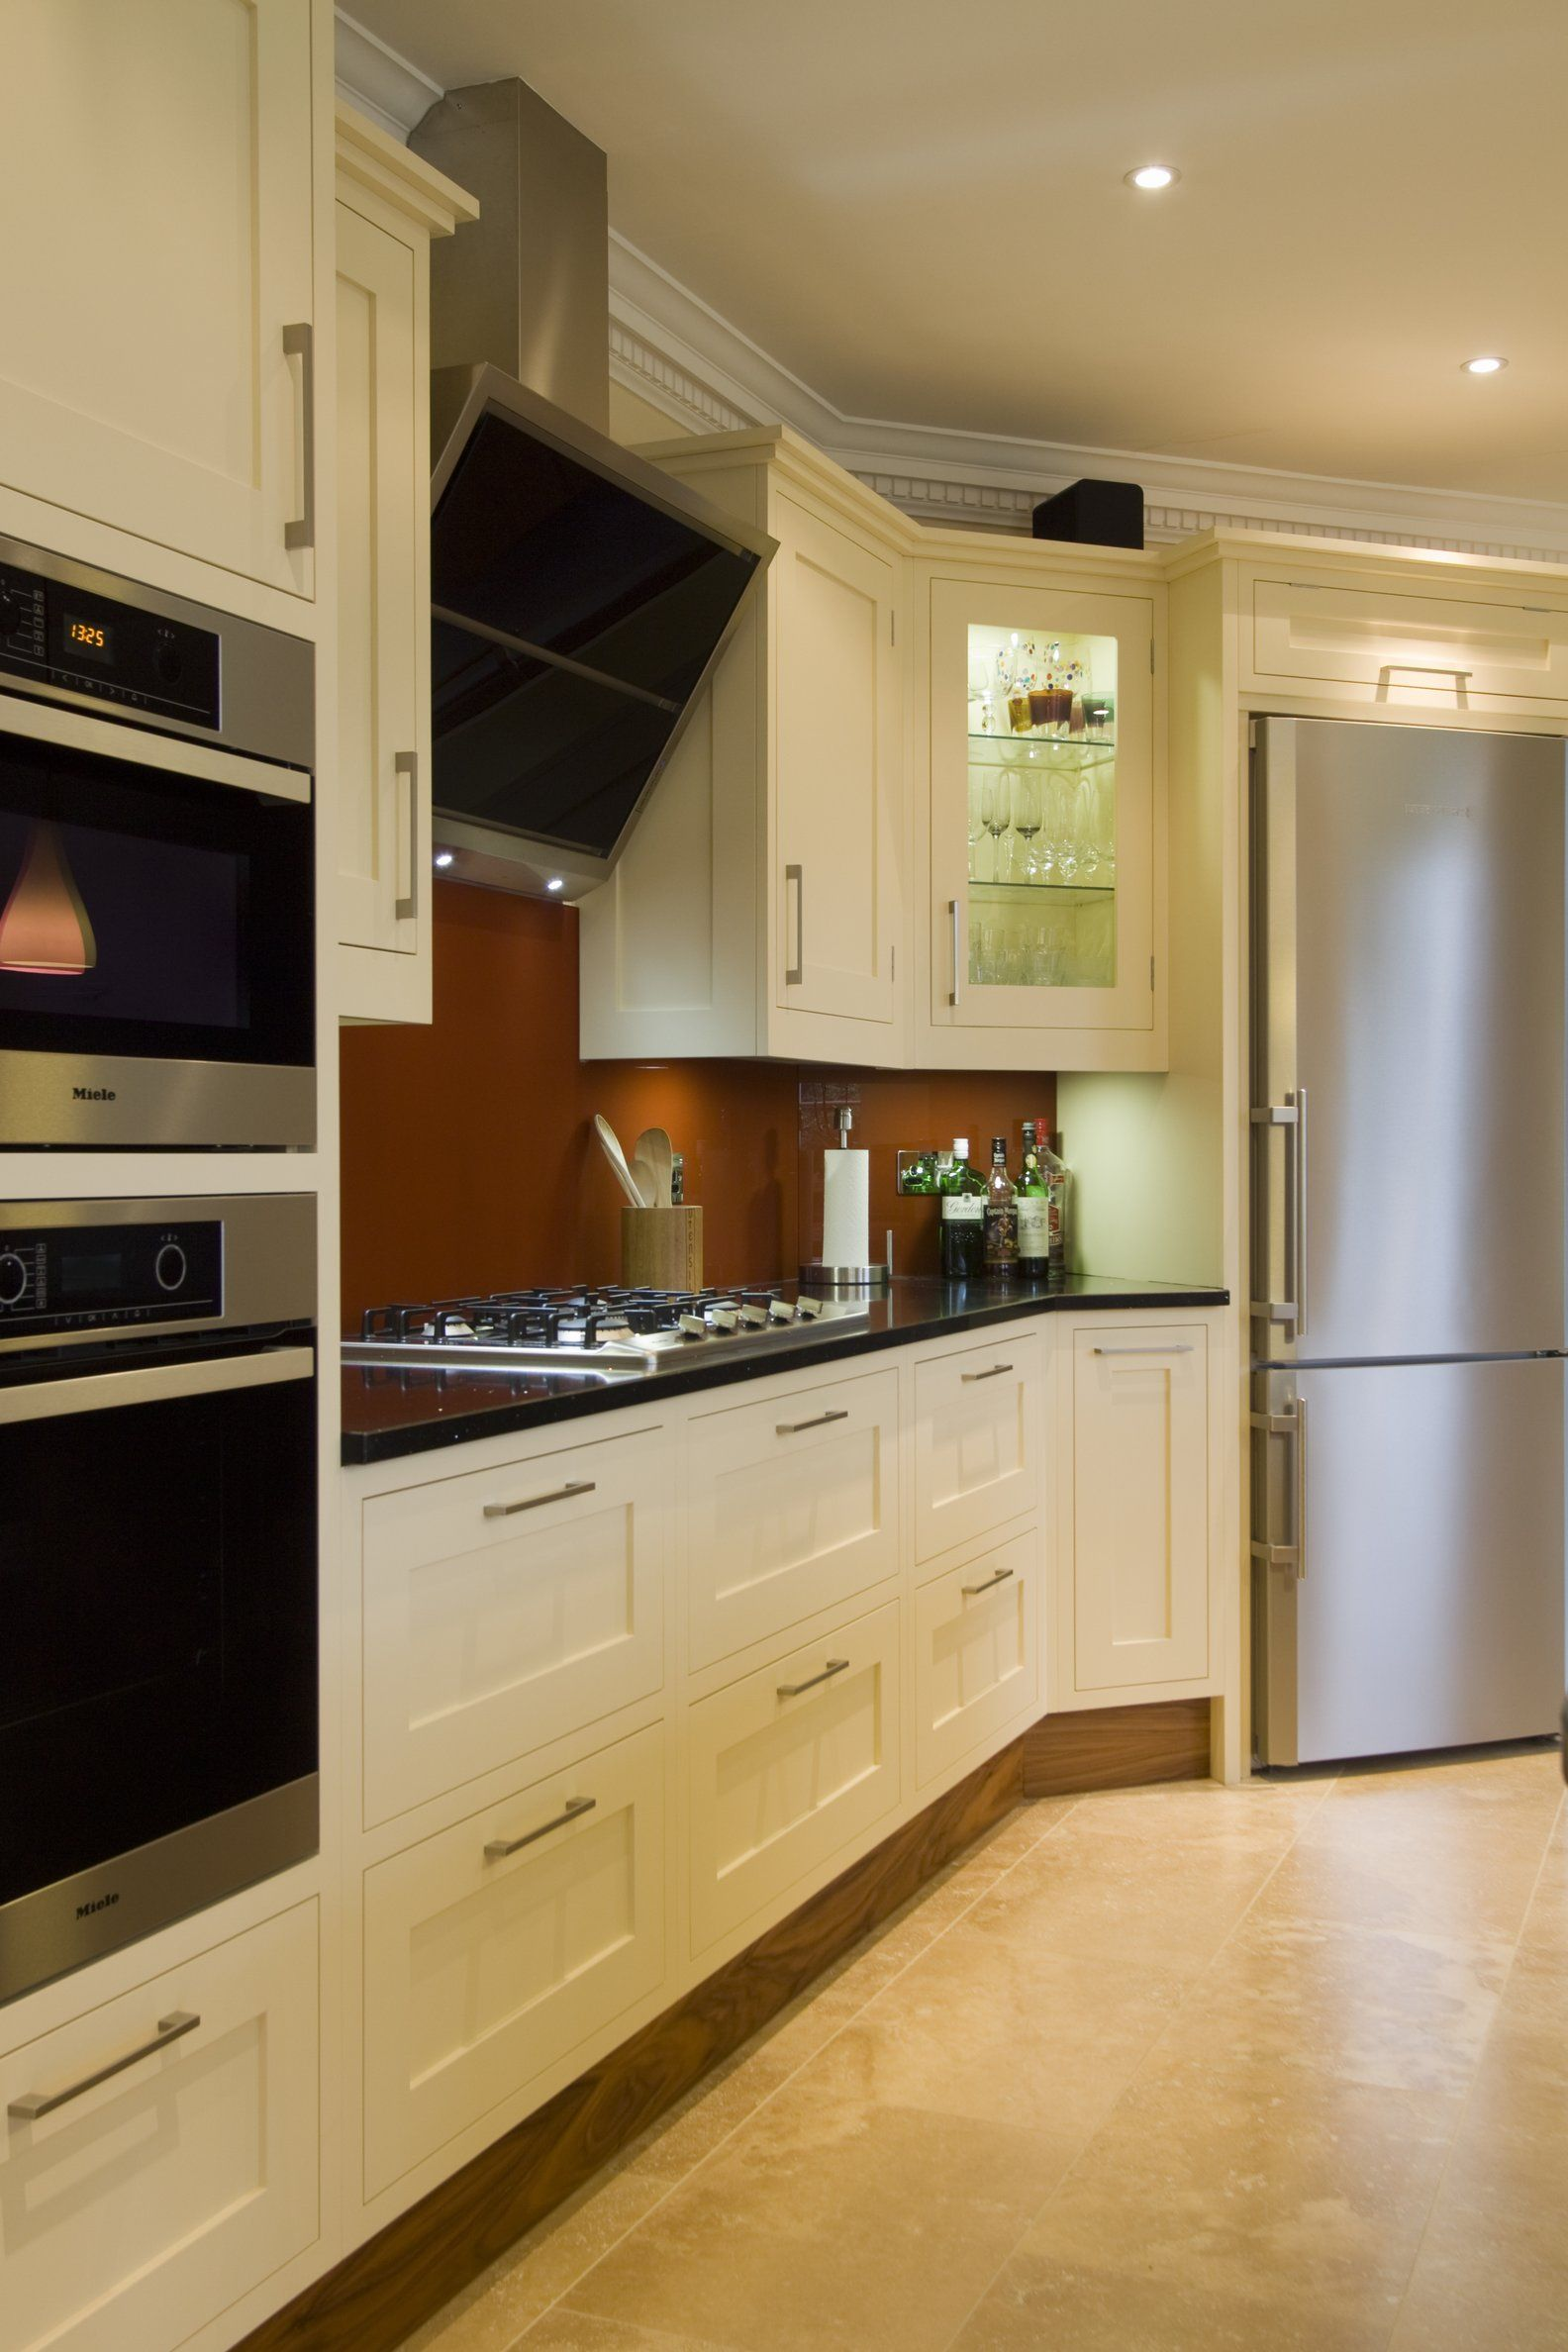 Angled Extractor Fan Height Google Search Kitchen Fridges Fridge Storage Extractor Fans